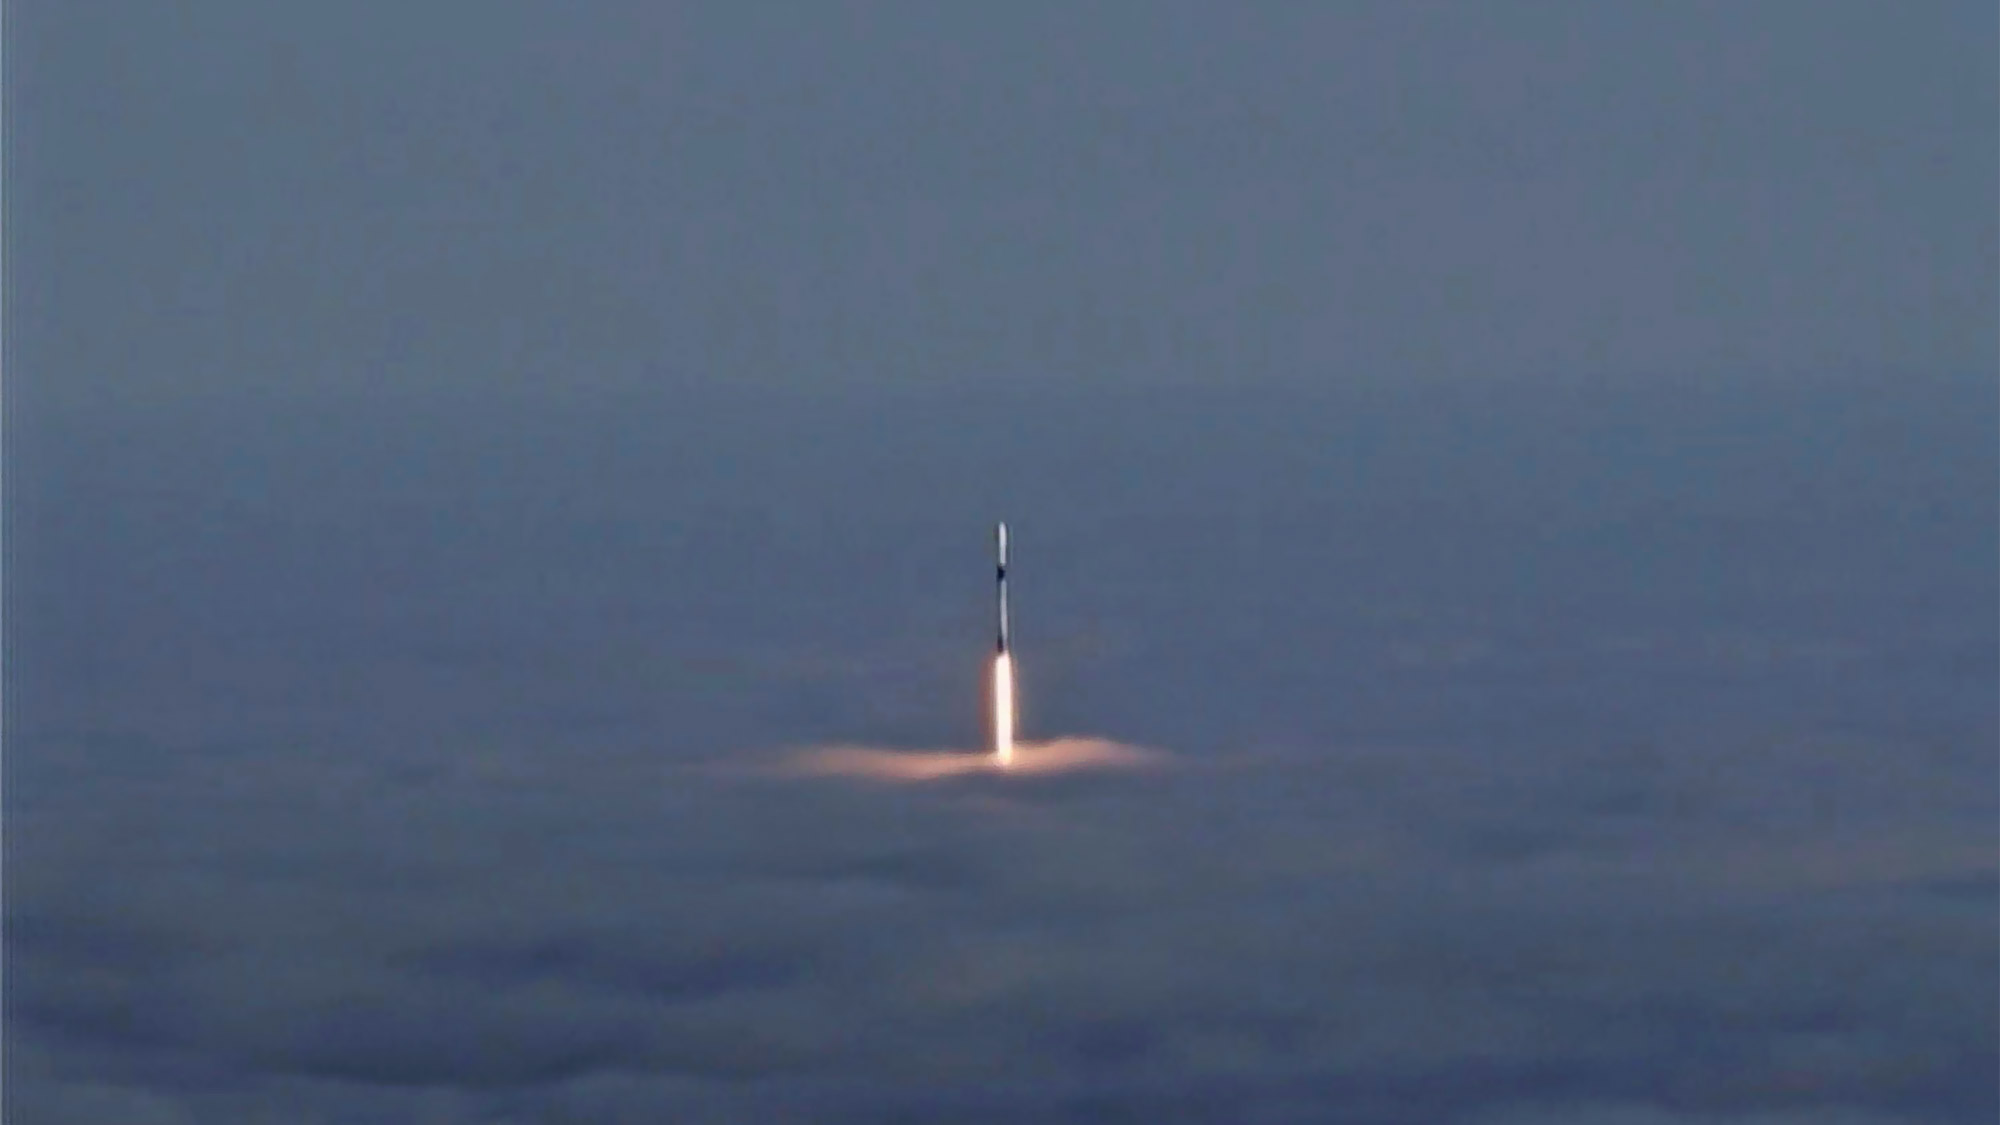 Out of the Fog: Amazing SpaceX Launch Photos of Canada's Radarsat Constellation